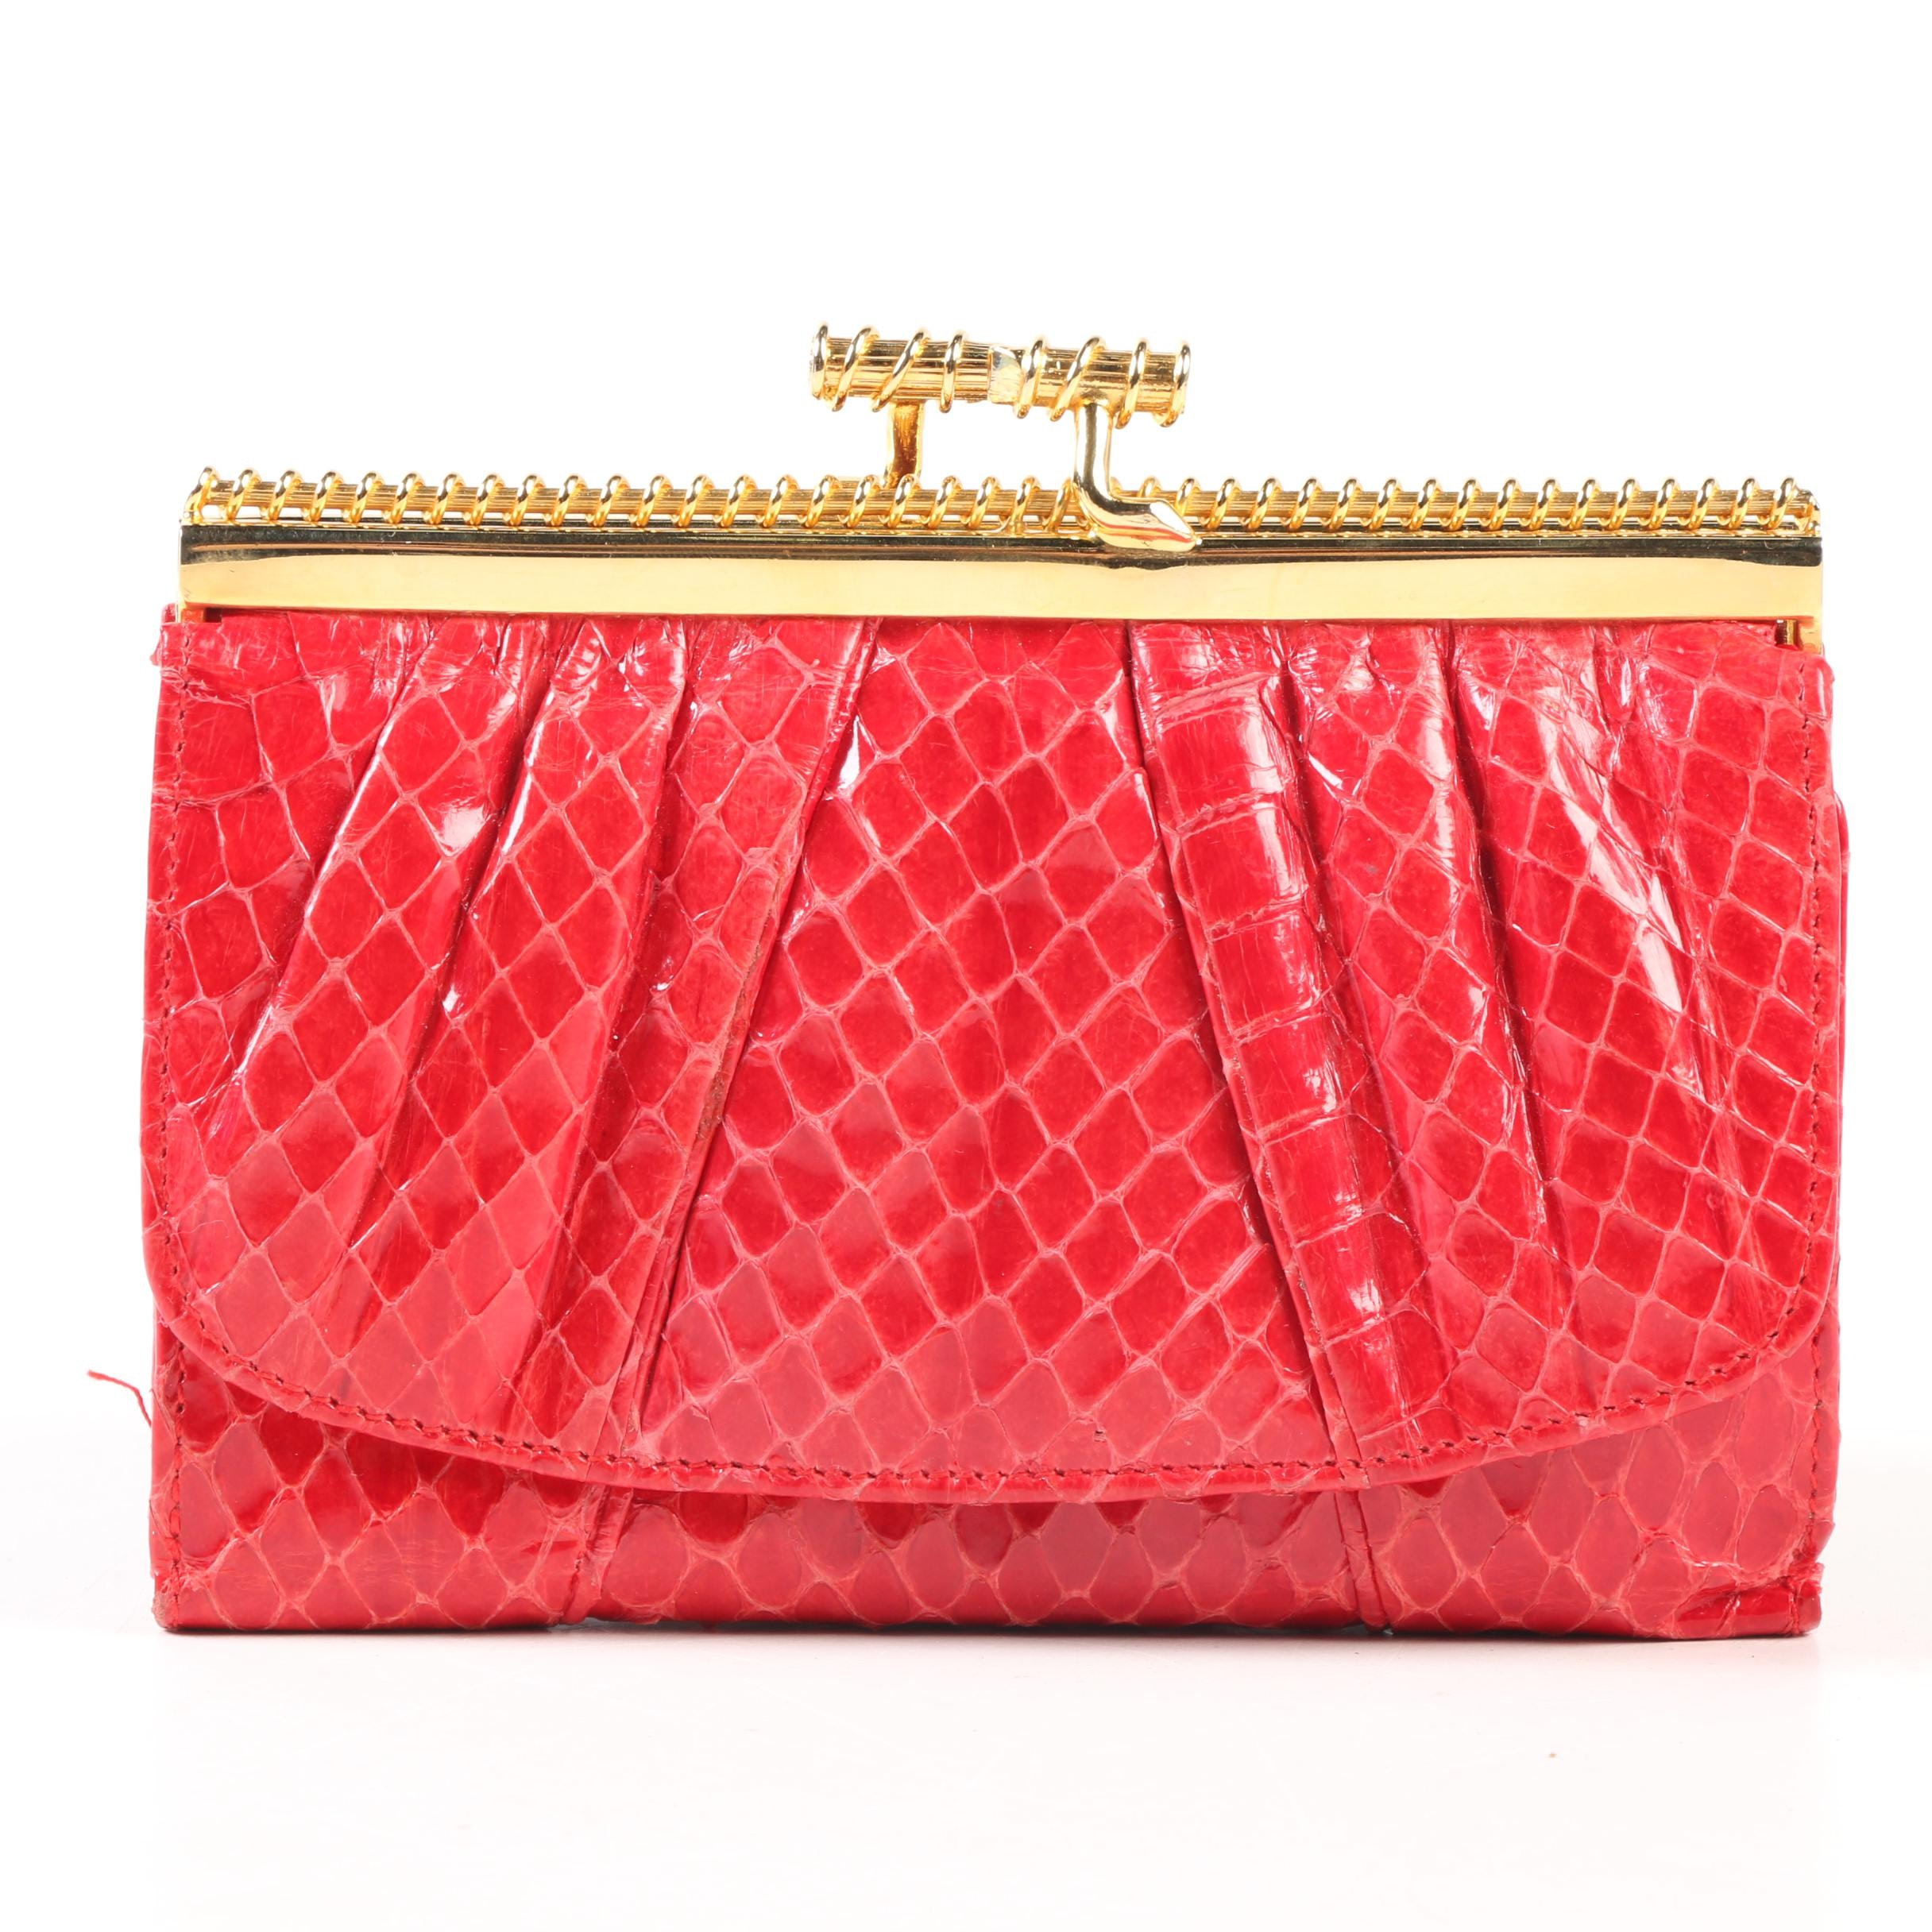 Judith Leiber Red Snakeskin and Leather Coin Purse Wallet, Vintage